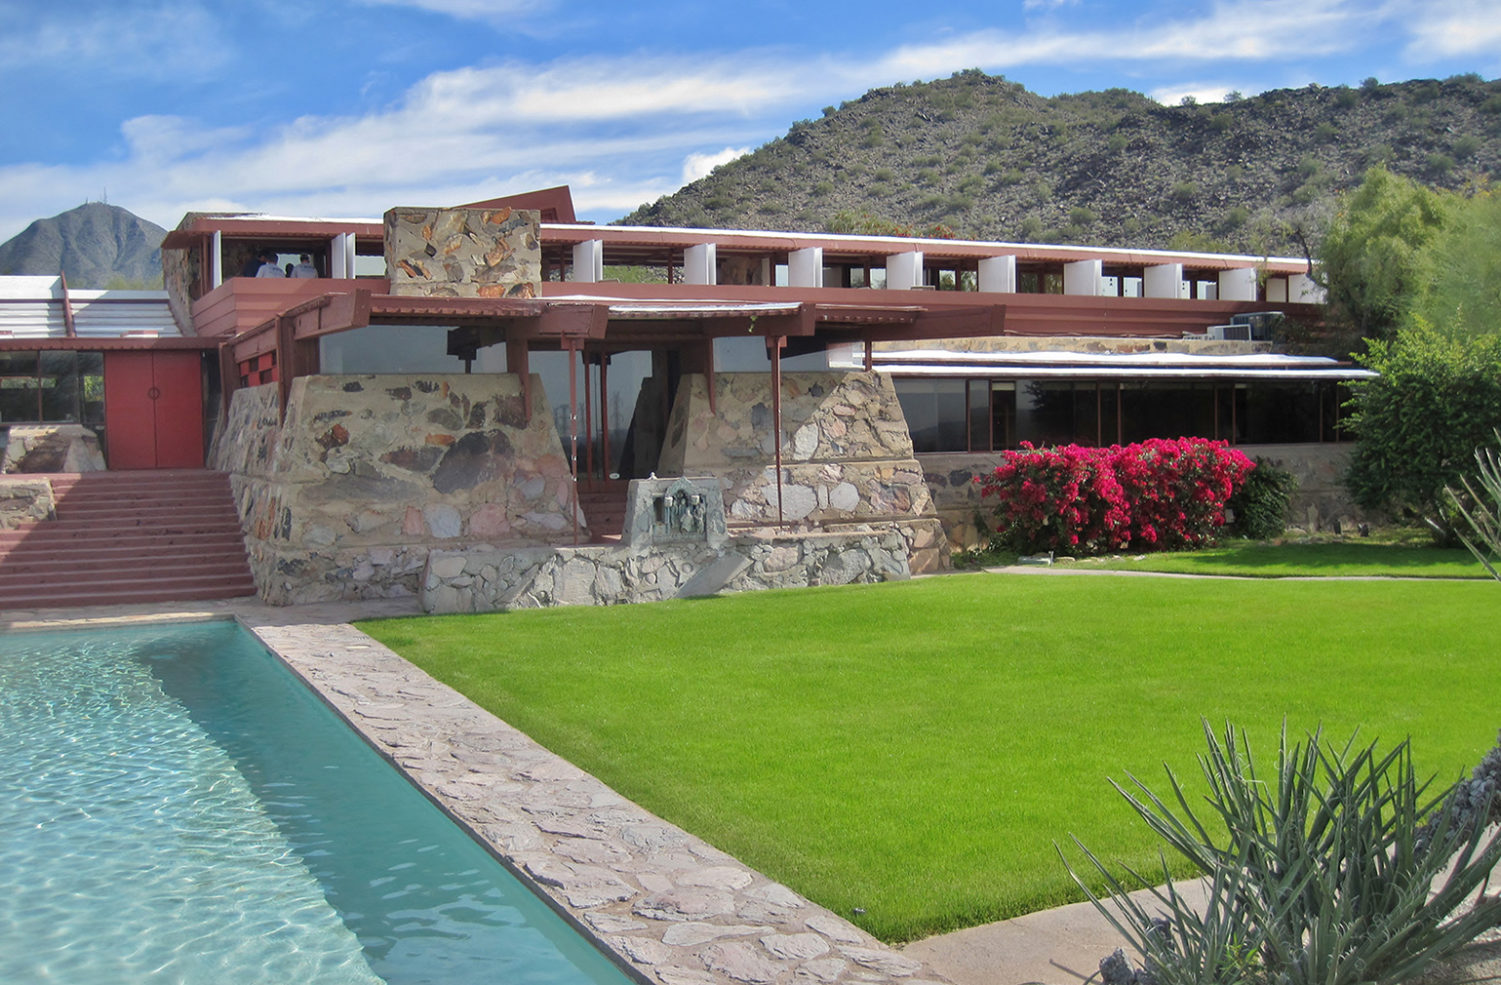 Architects homes including Frank Lloyd Wright's Scottsdale residence